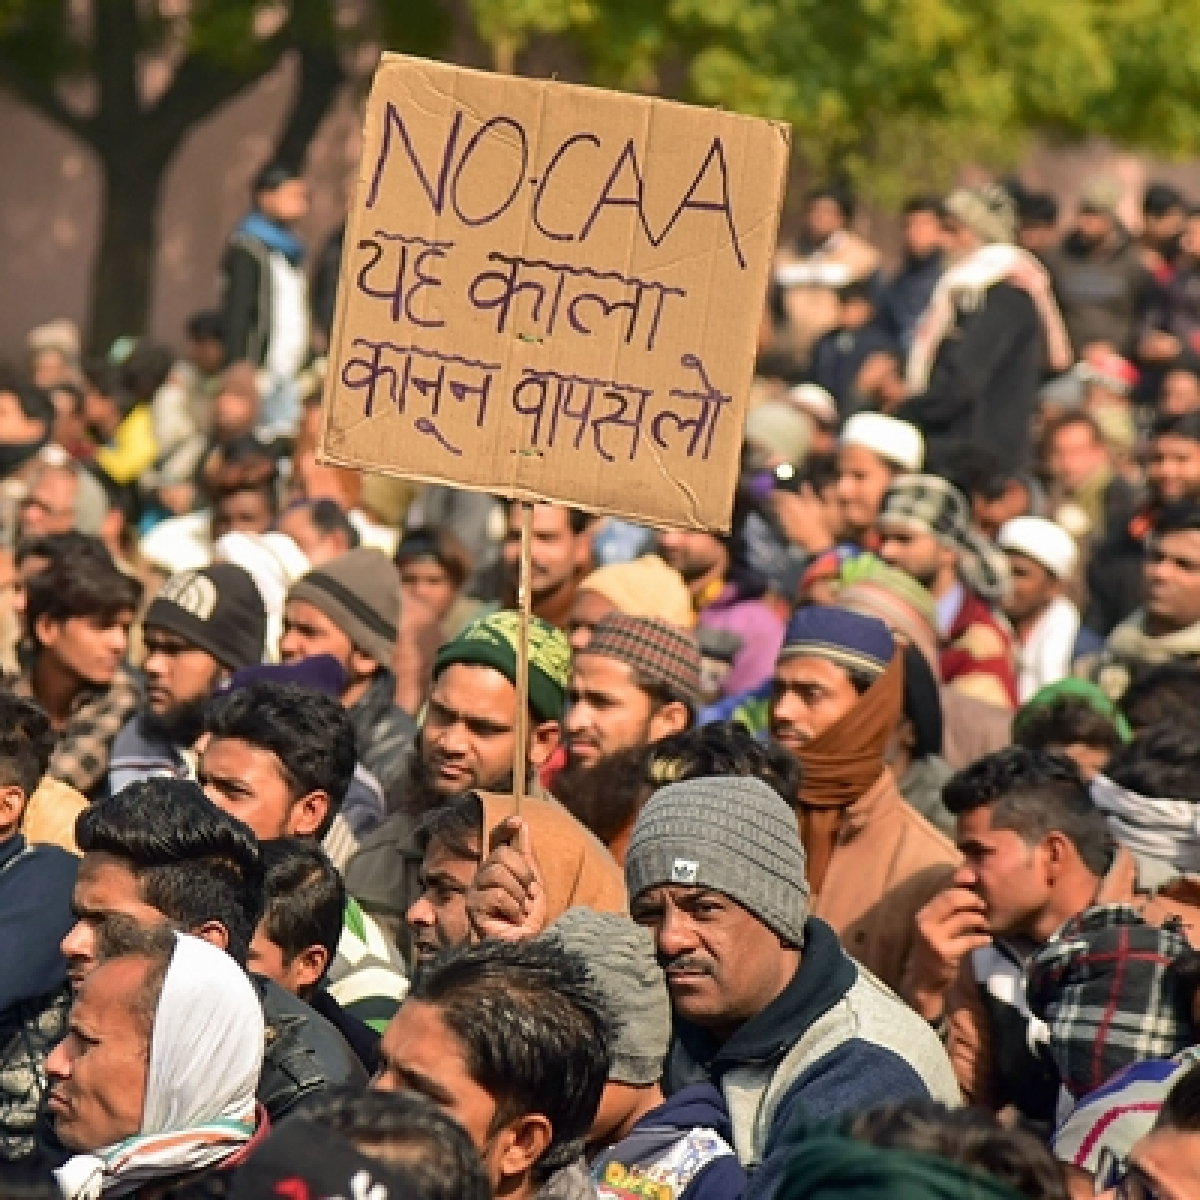 Over 150 booked for protesting against CAA at Aligarh Muslim University